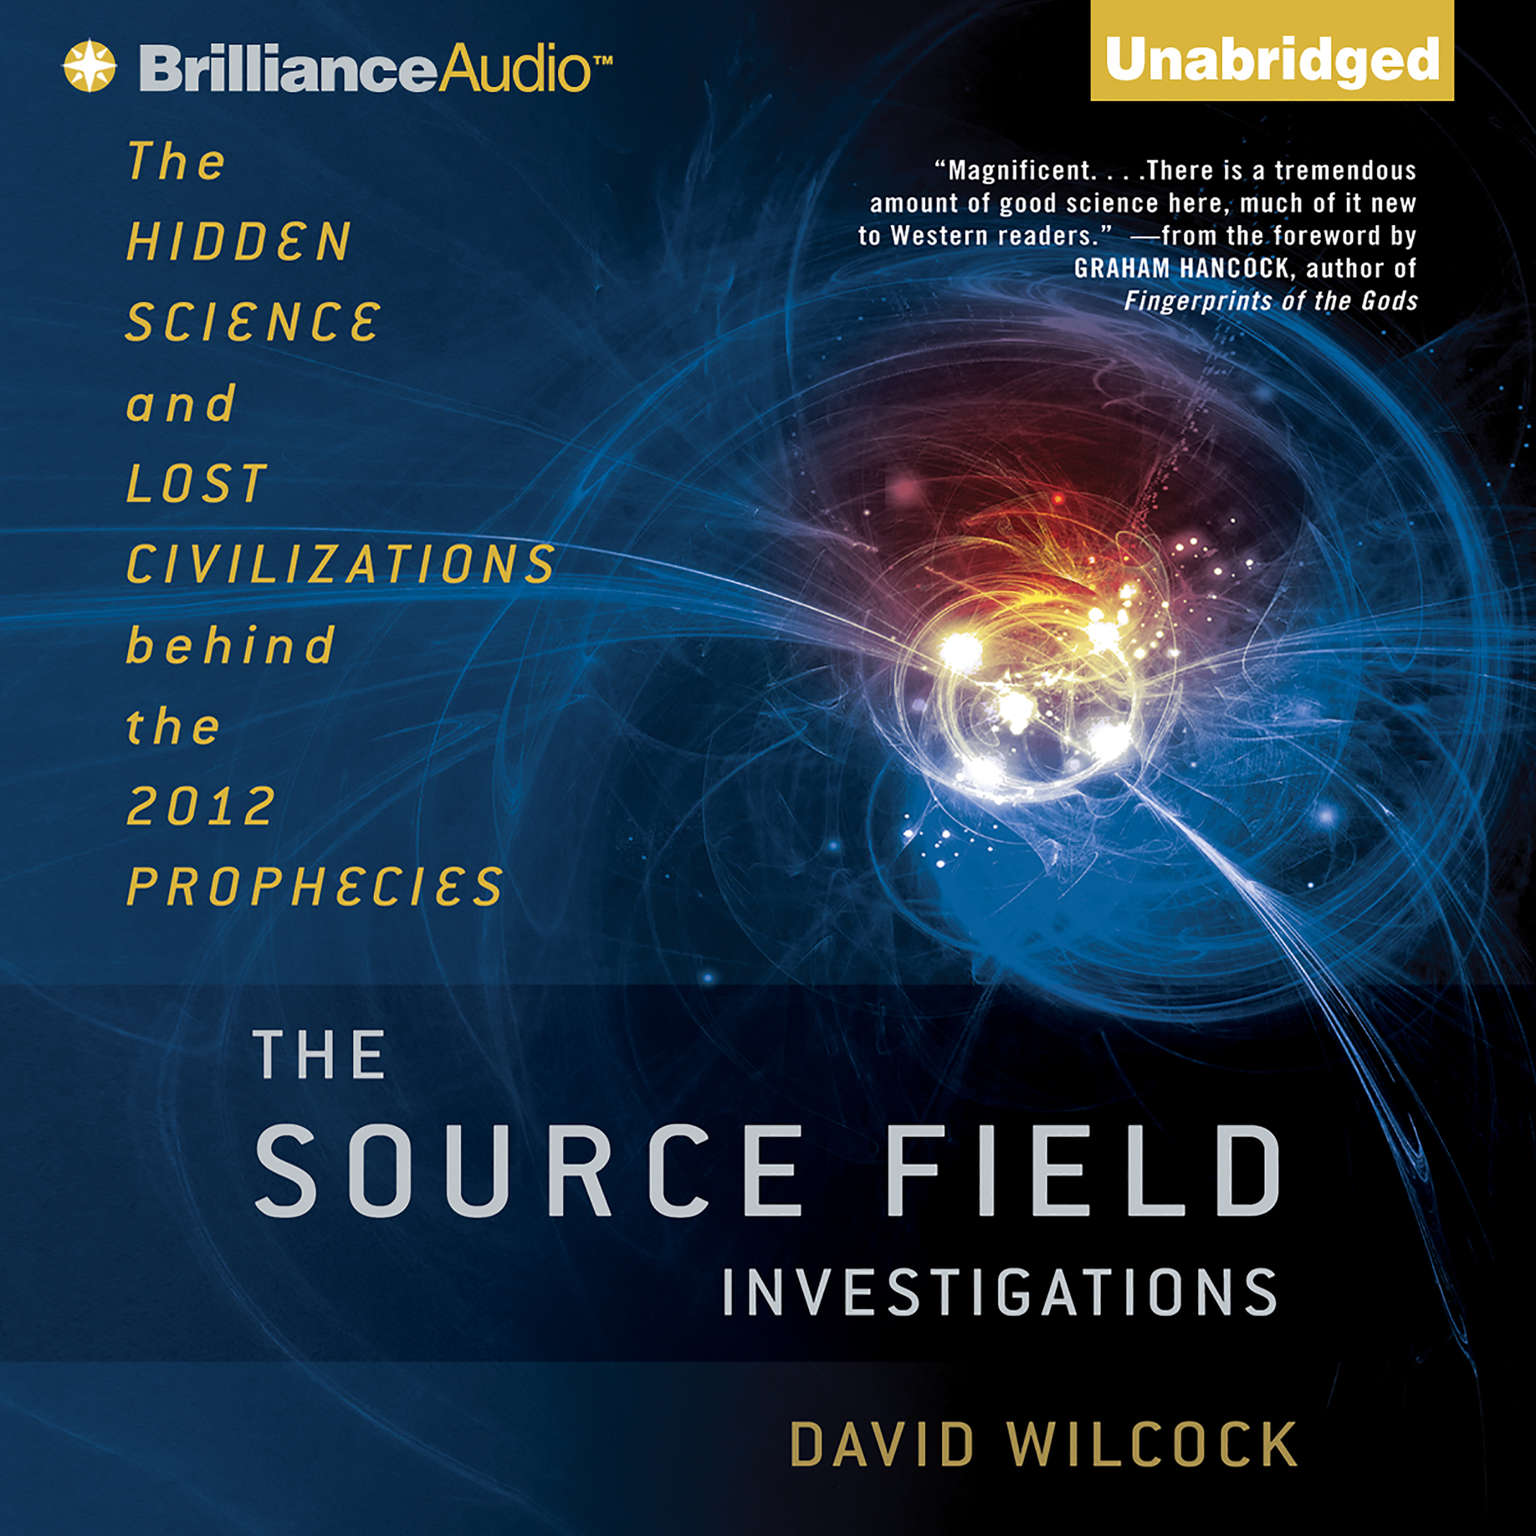 Printable The Source Field Investigations: The Hidden Science and Lost Civilizations behind the 2012 Prophecies Audiobook Cover Art